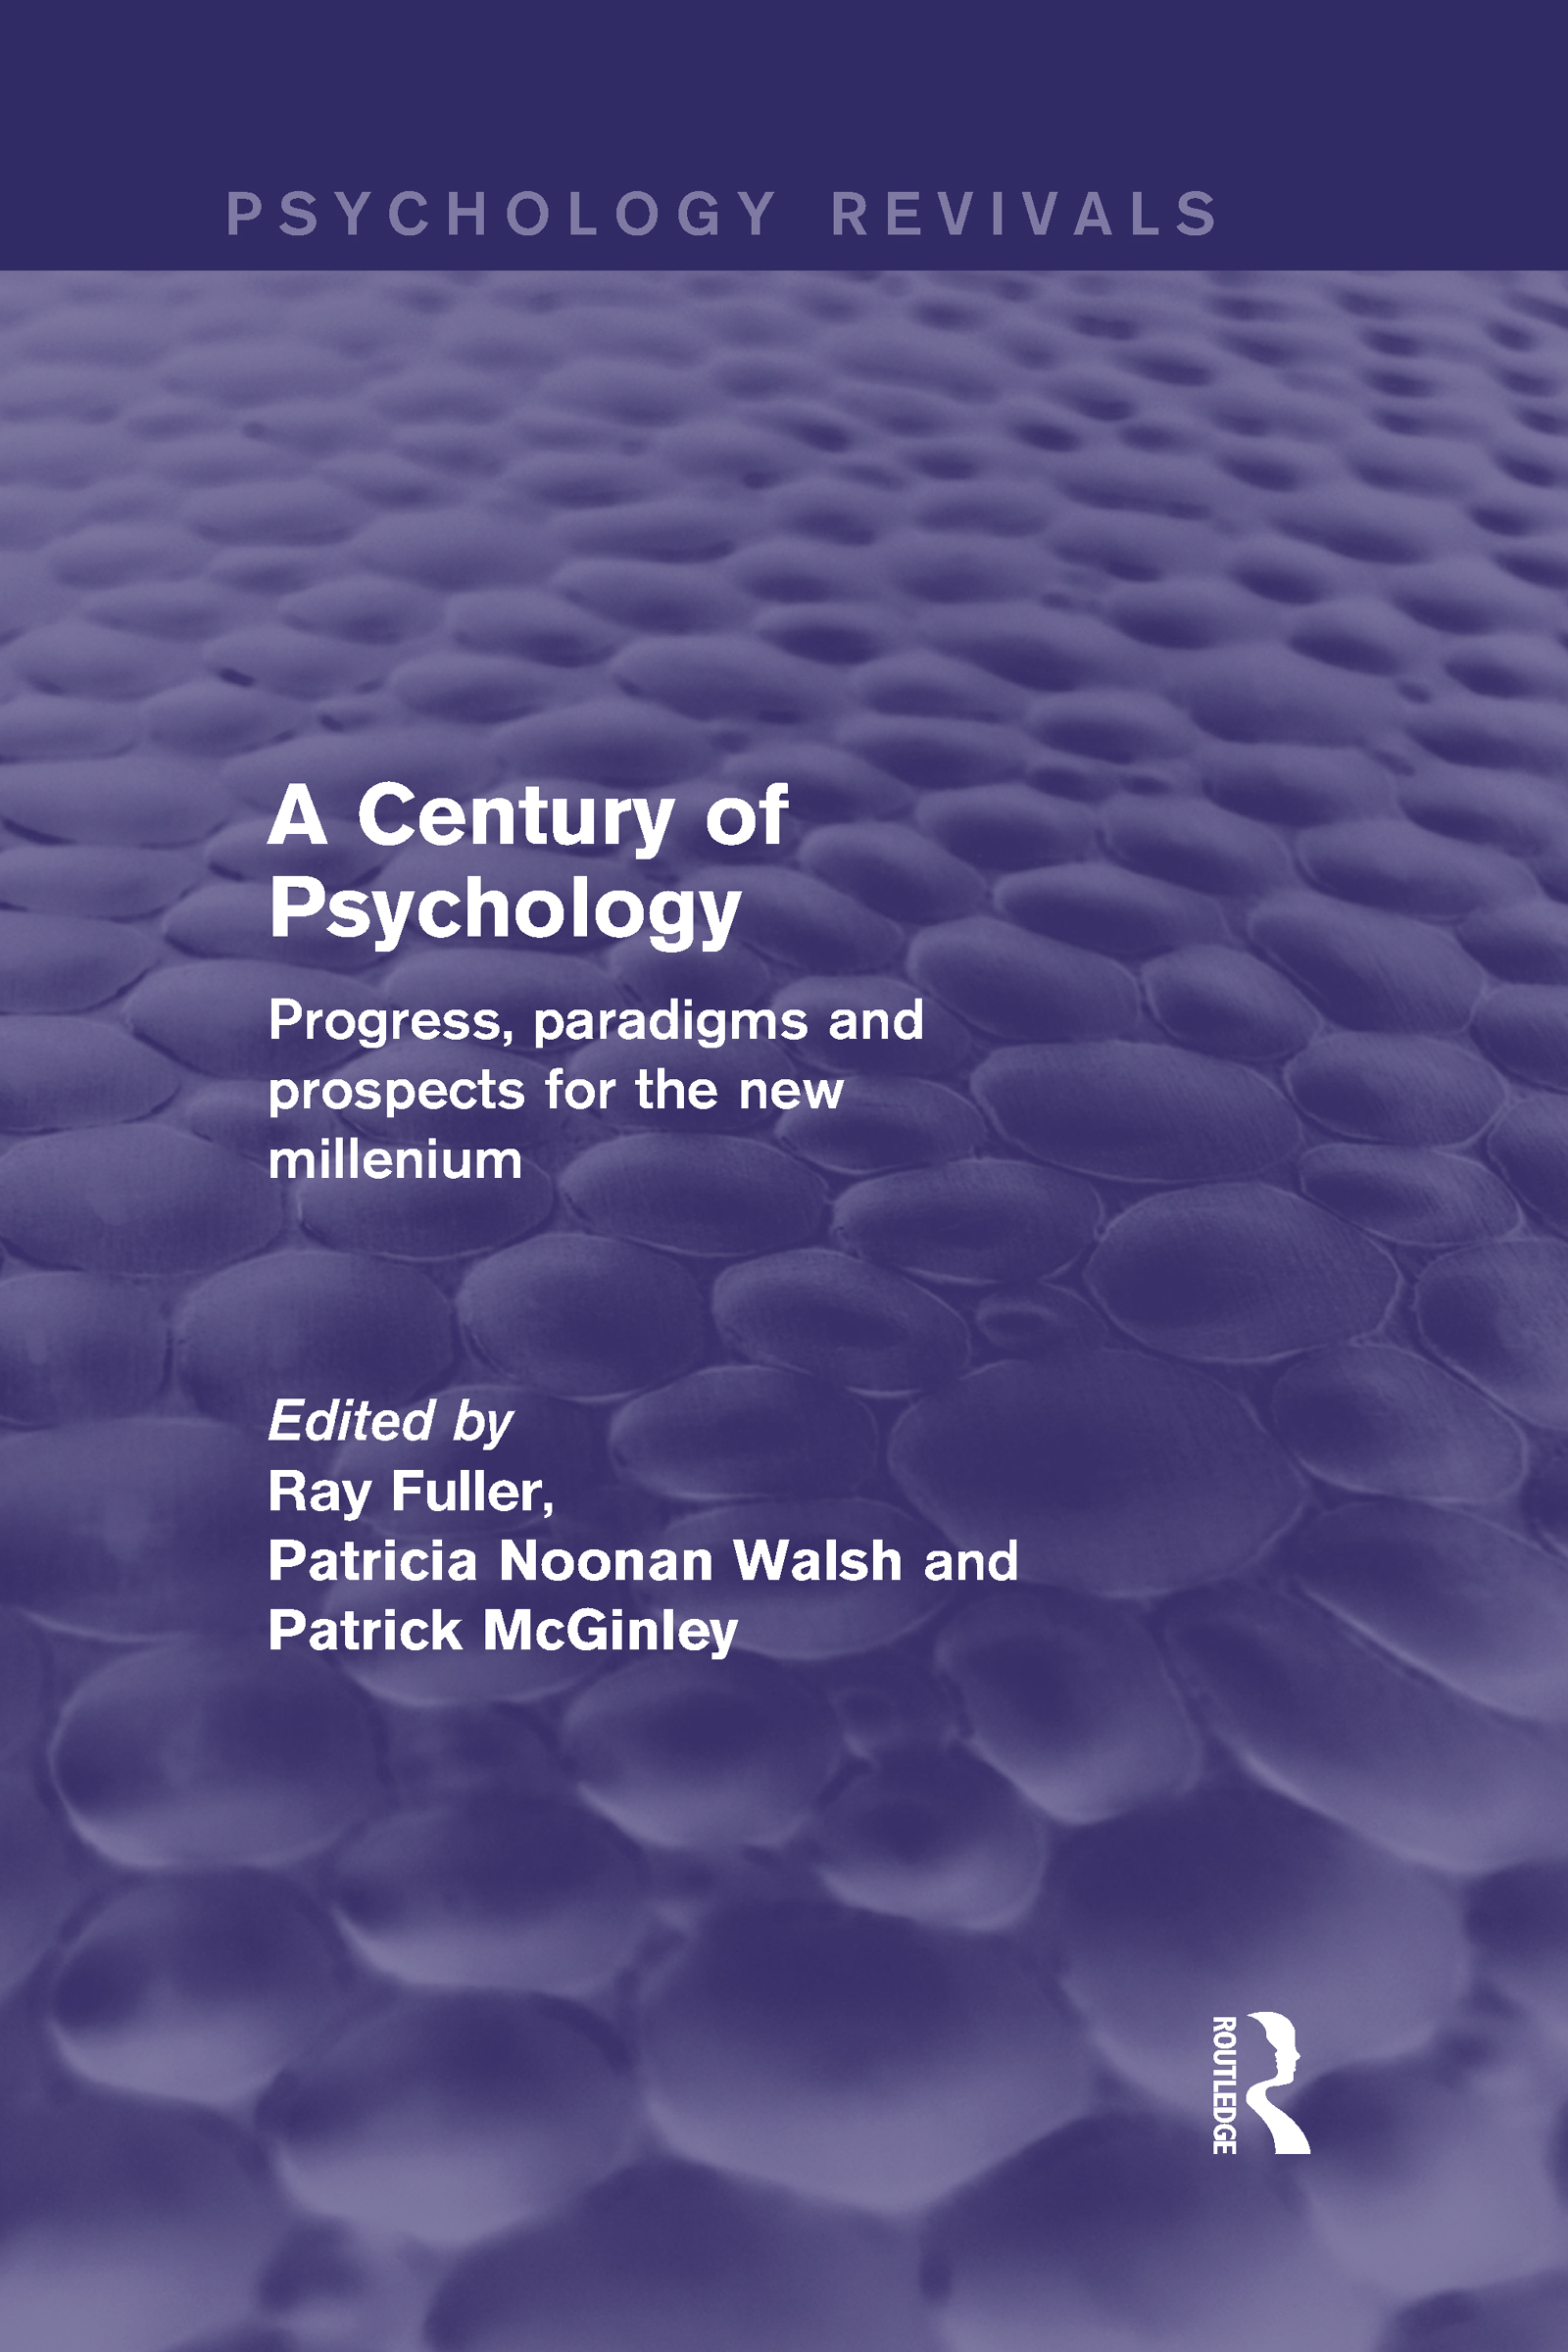 A Century of Psychology (Psychology Revivals): Progress, paradigms and prospects for the new millennium (Hardback) book cover